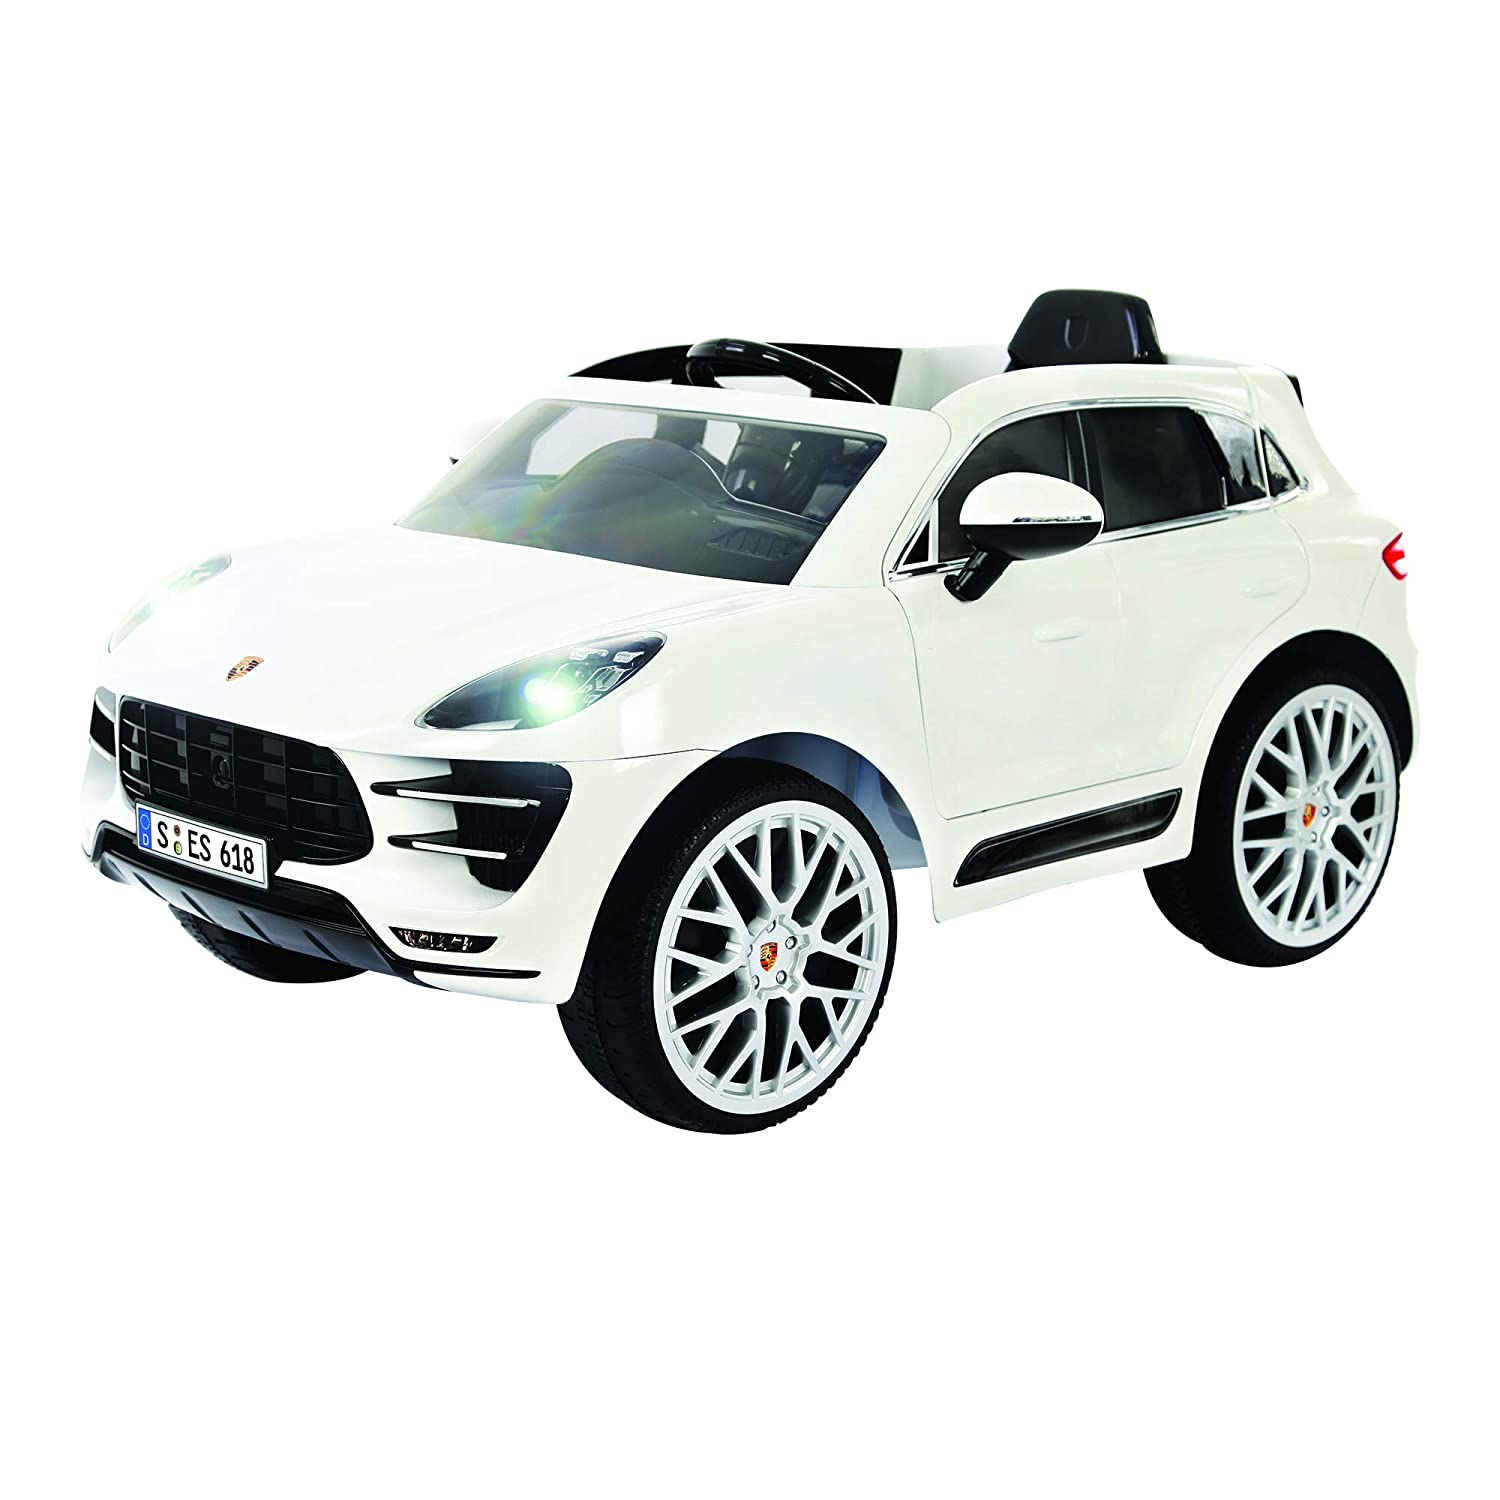 Rollplay 6 Volt Porsche Macan Ride On Toy, Battery-Powered Kids Ride On Car